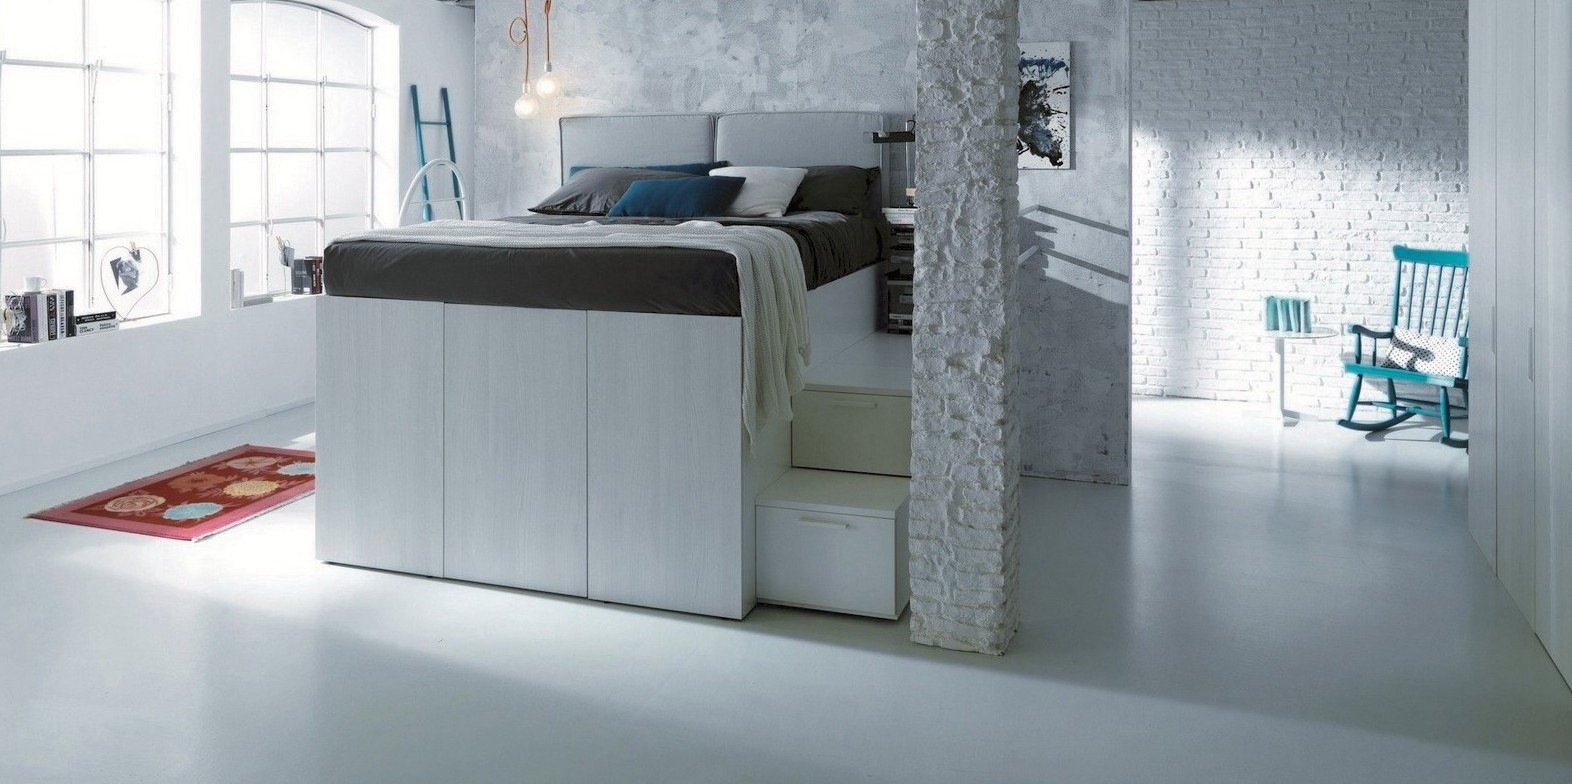 two-in-one bed and closet - under the bed storage